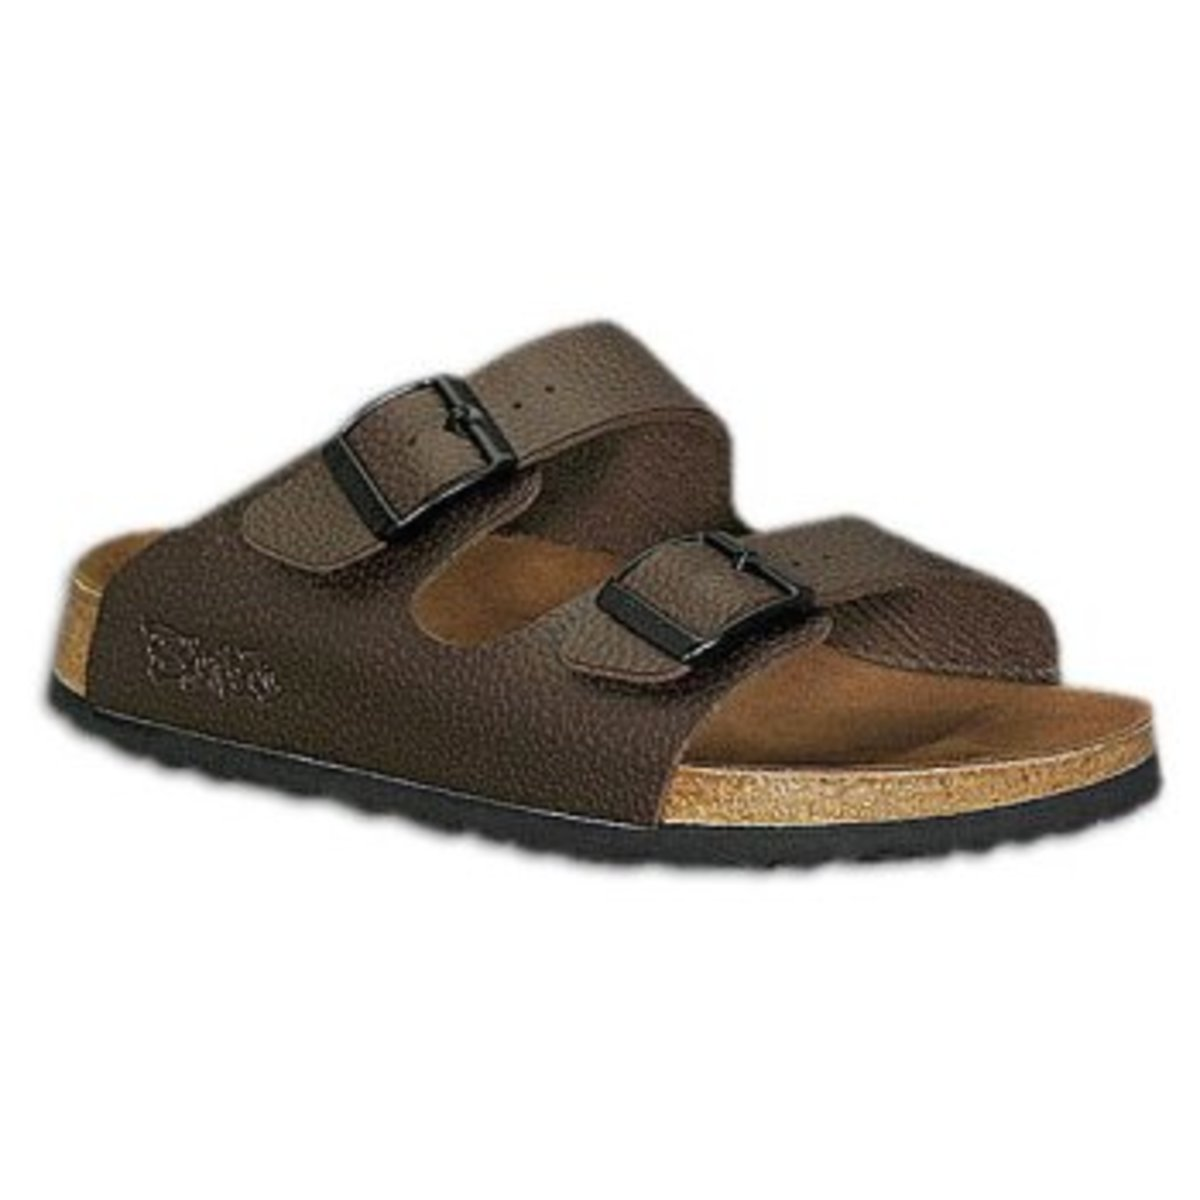 Birkenstock Sandals - The Perfect Sandals For Flat Feet?